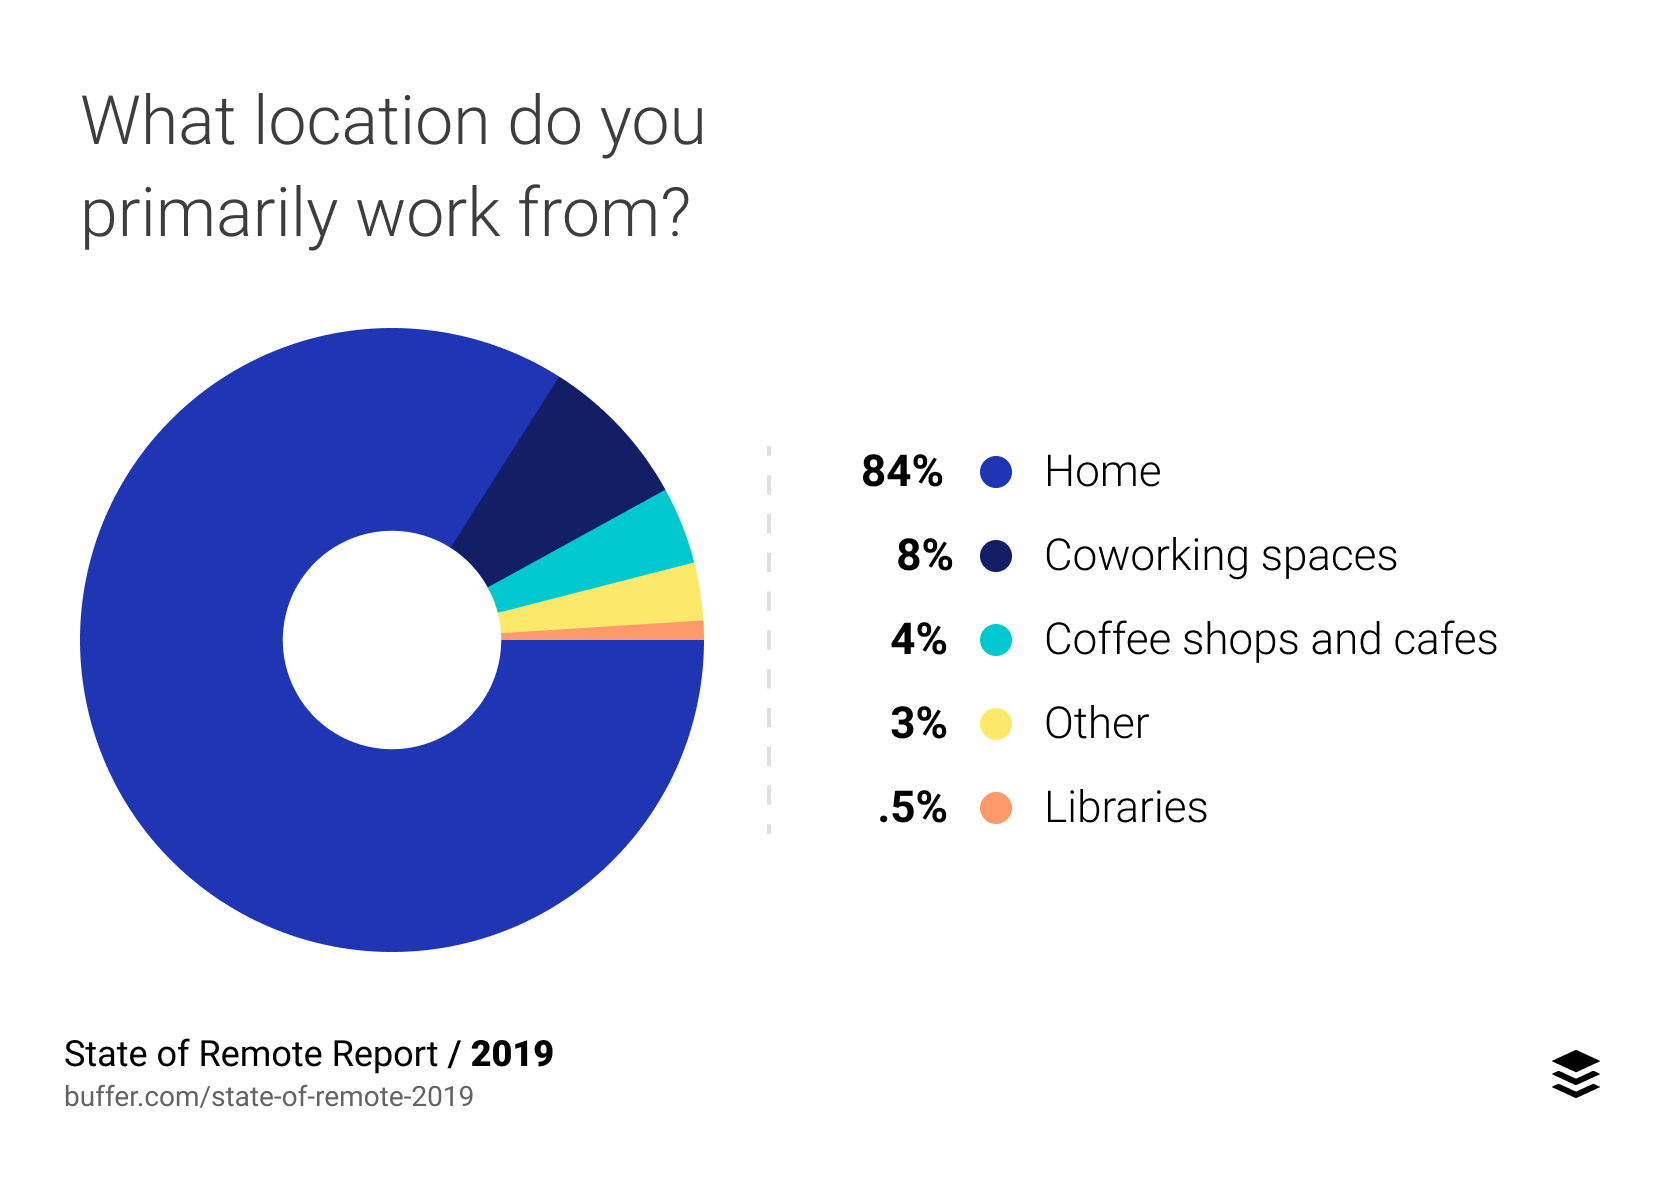 What location do you primarily work from?